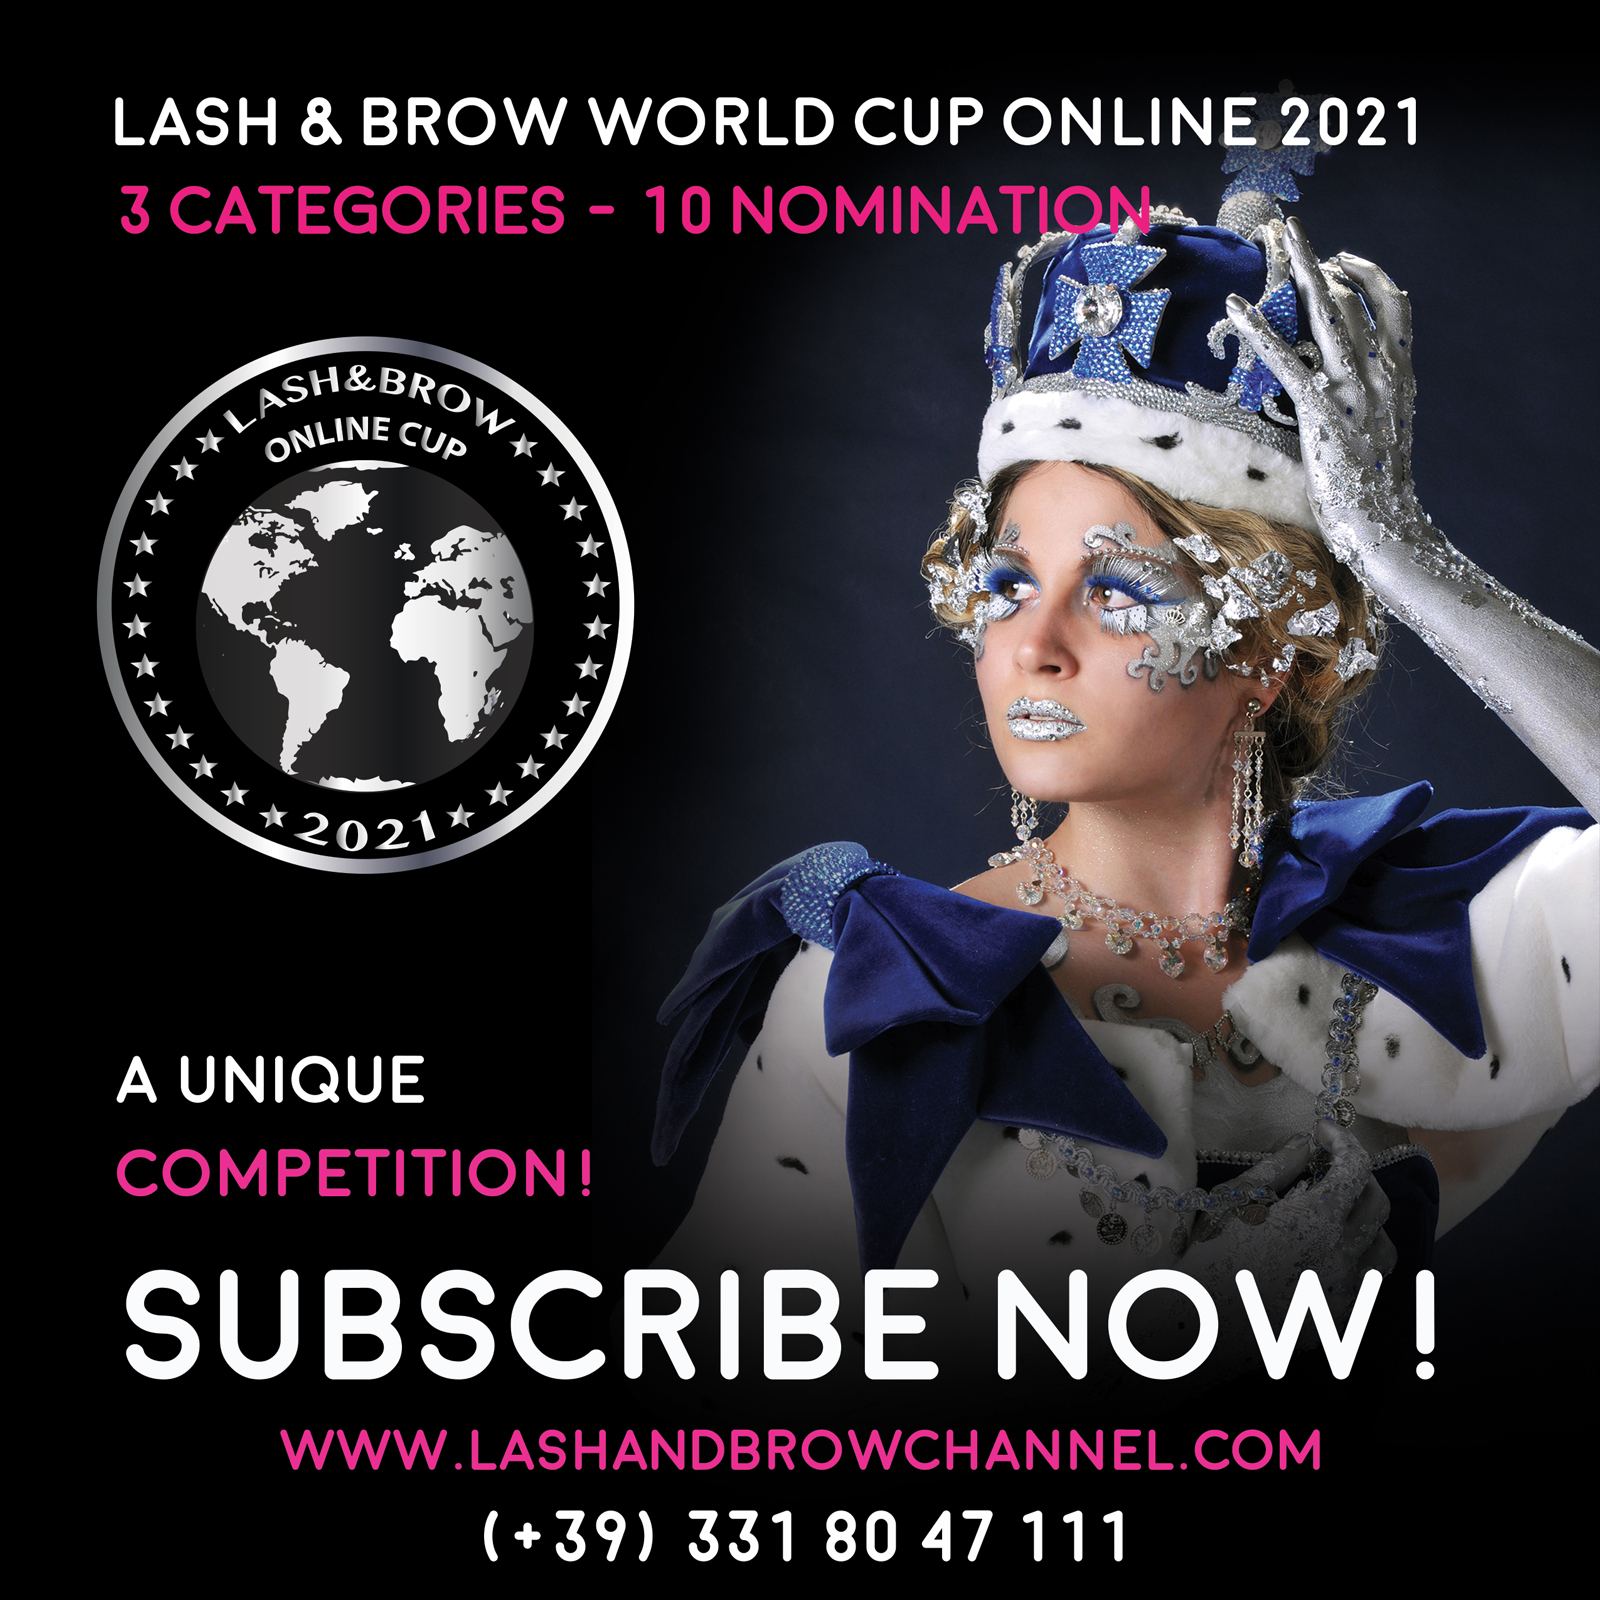 News about Lash&Brow World Cup 2021